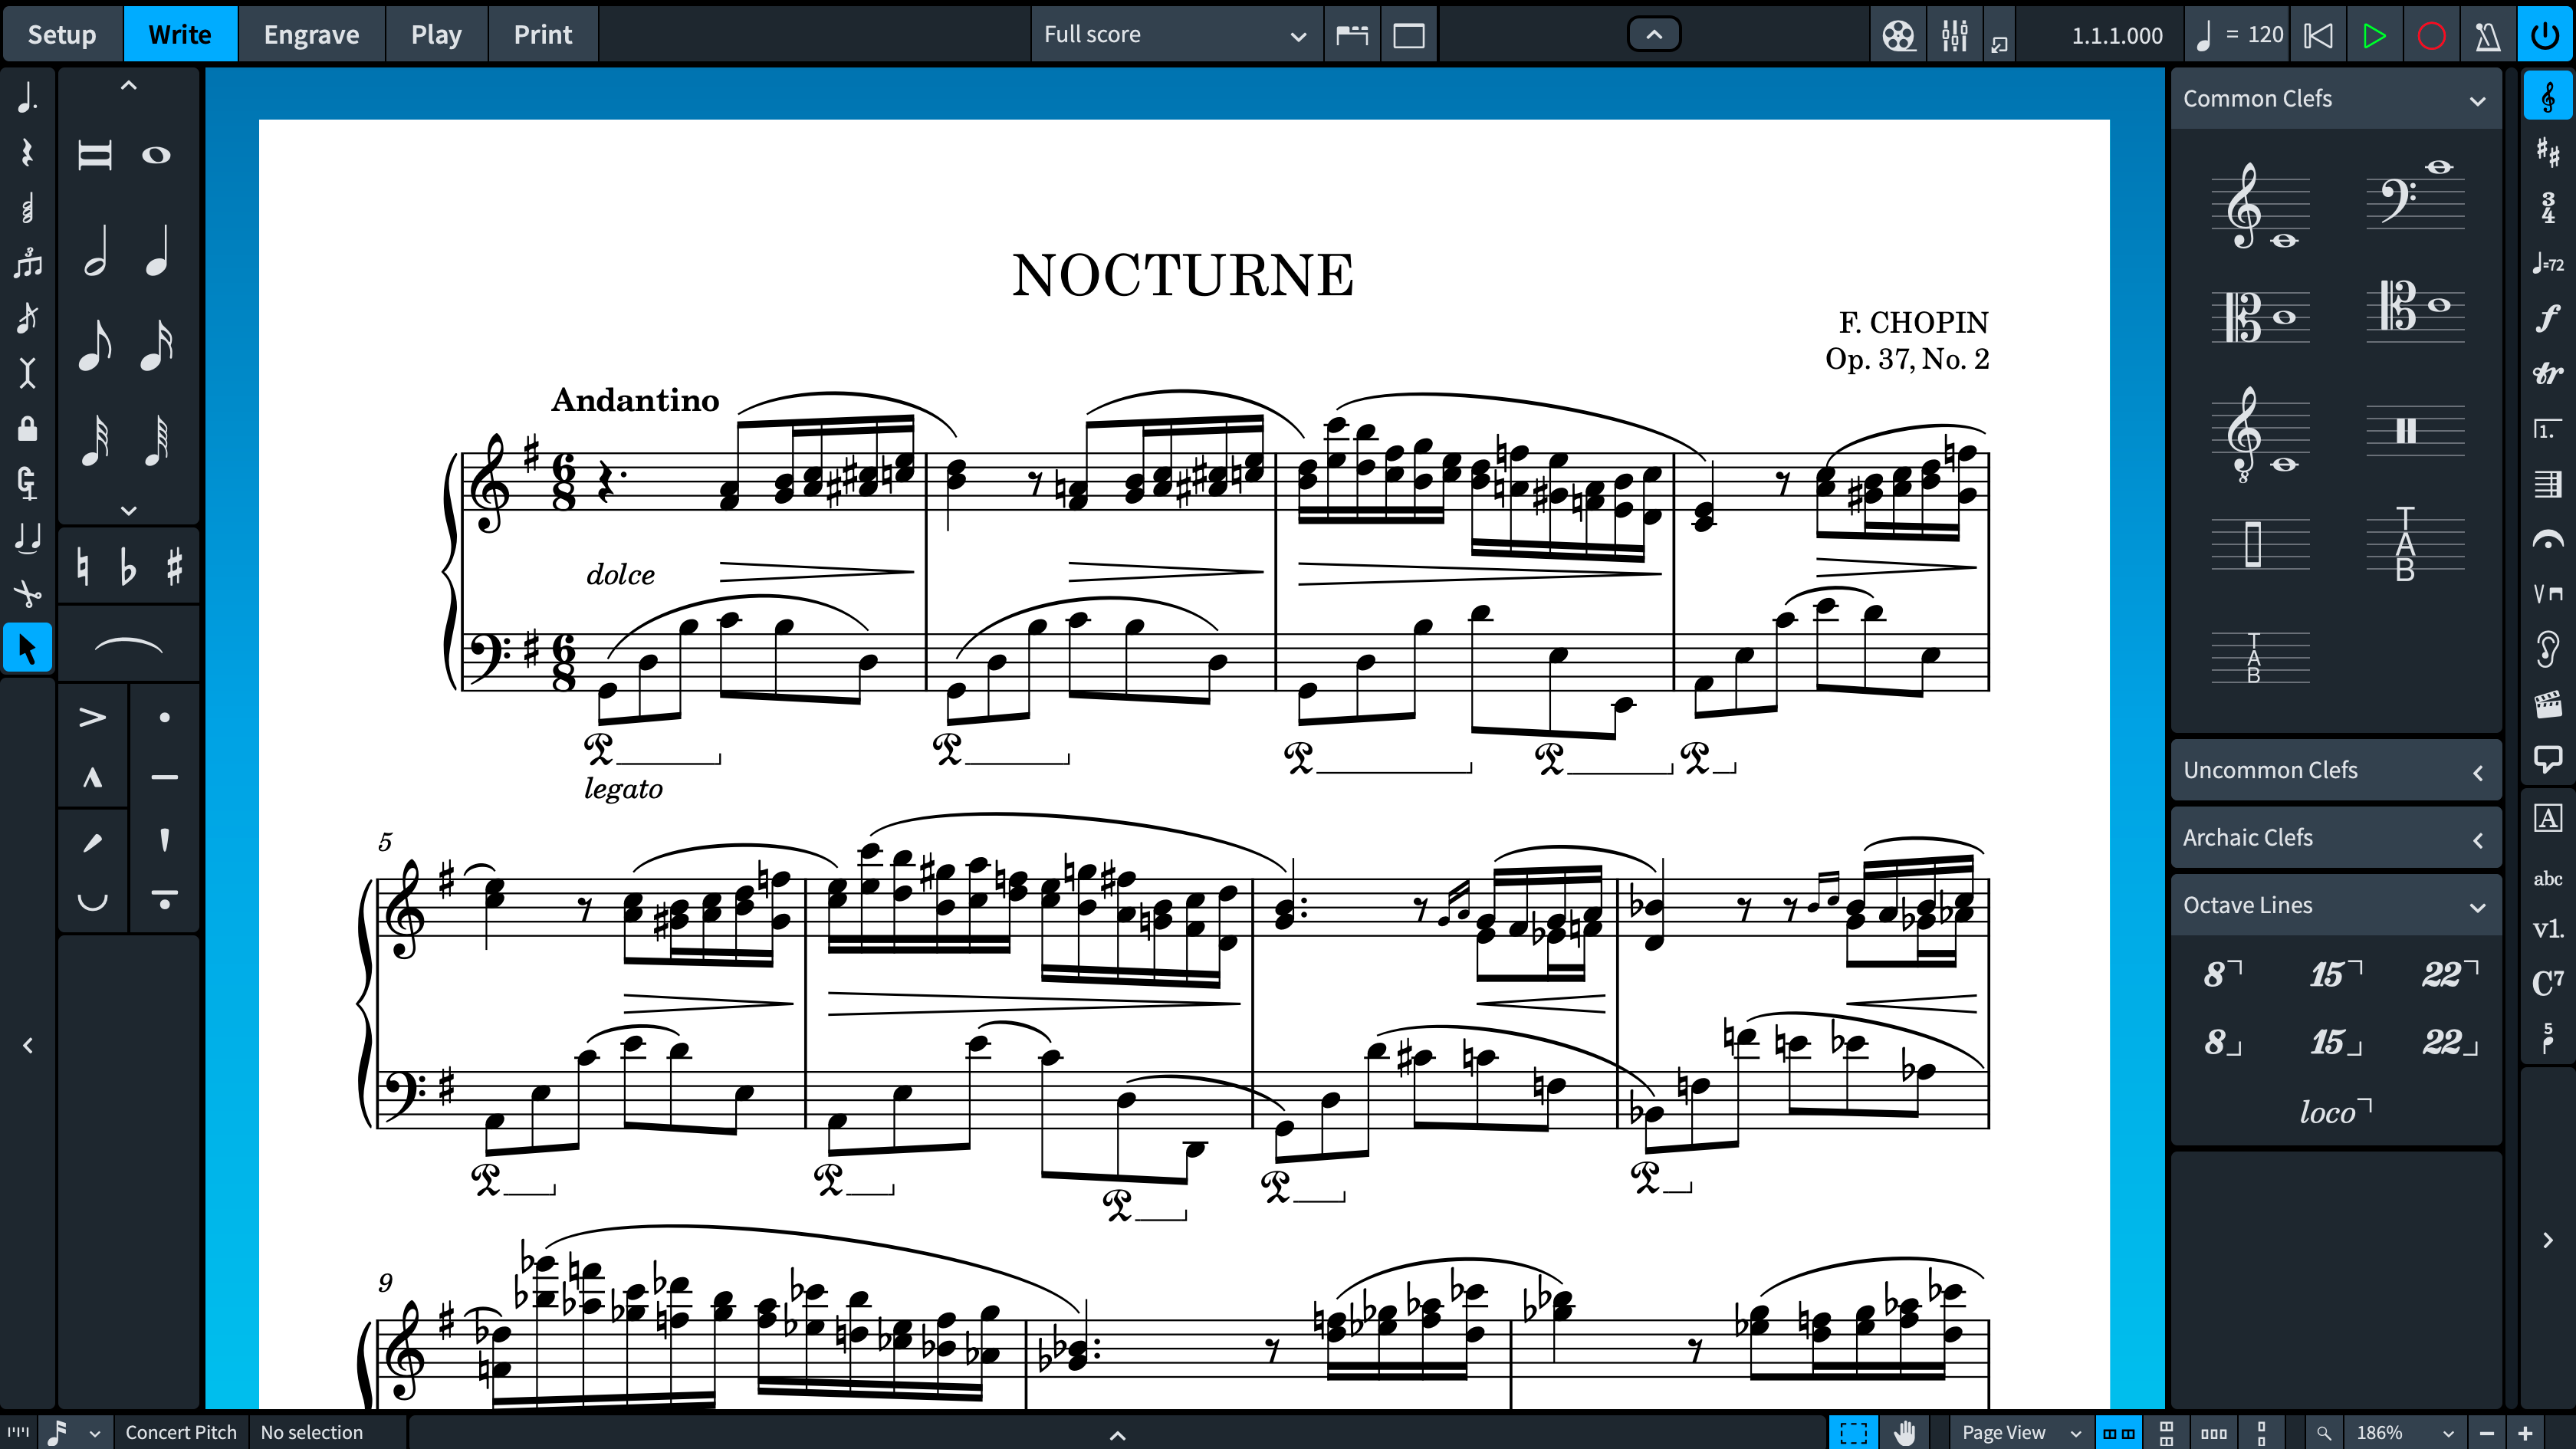 Music Notation Software - Write scores with Dorico | Steinberg